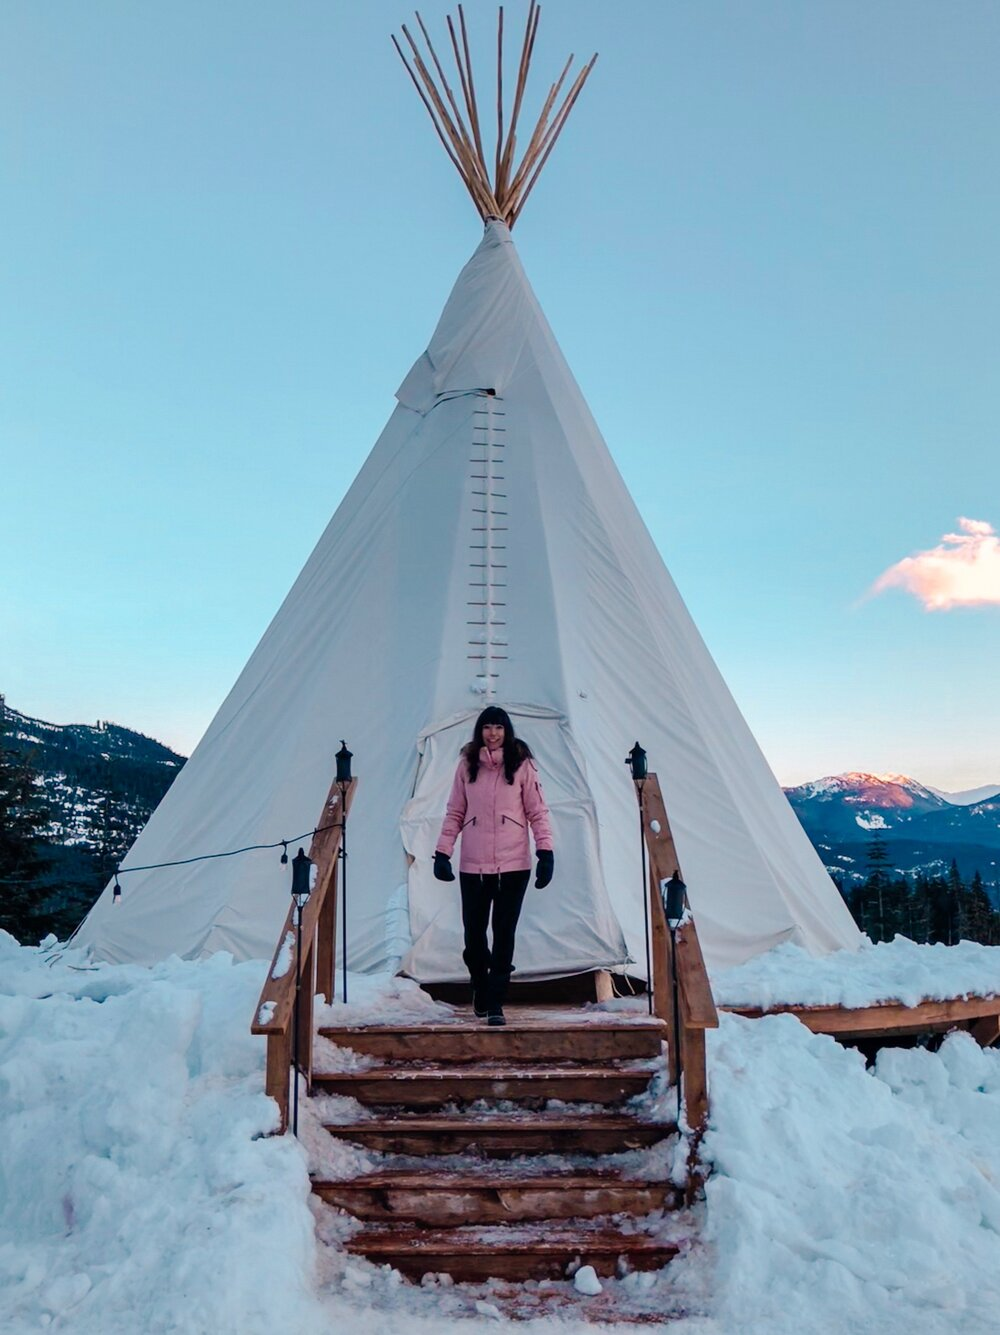 Unique snowshoe teepee tour in Whistler